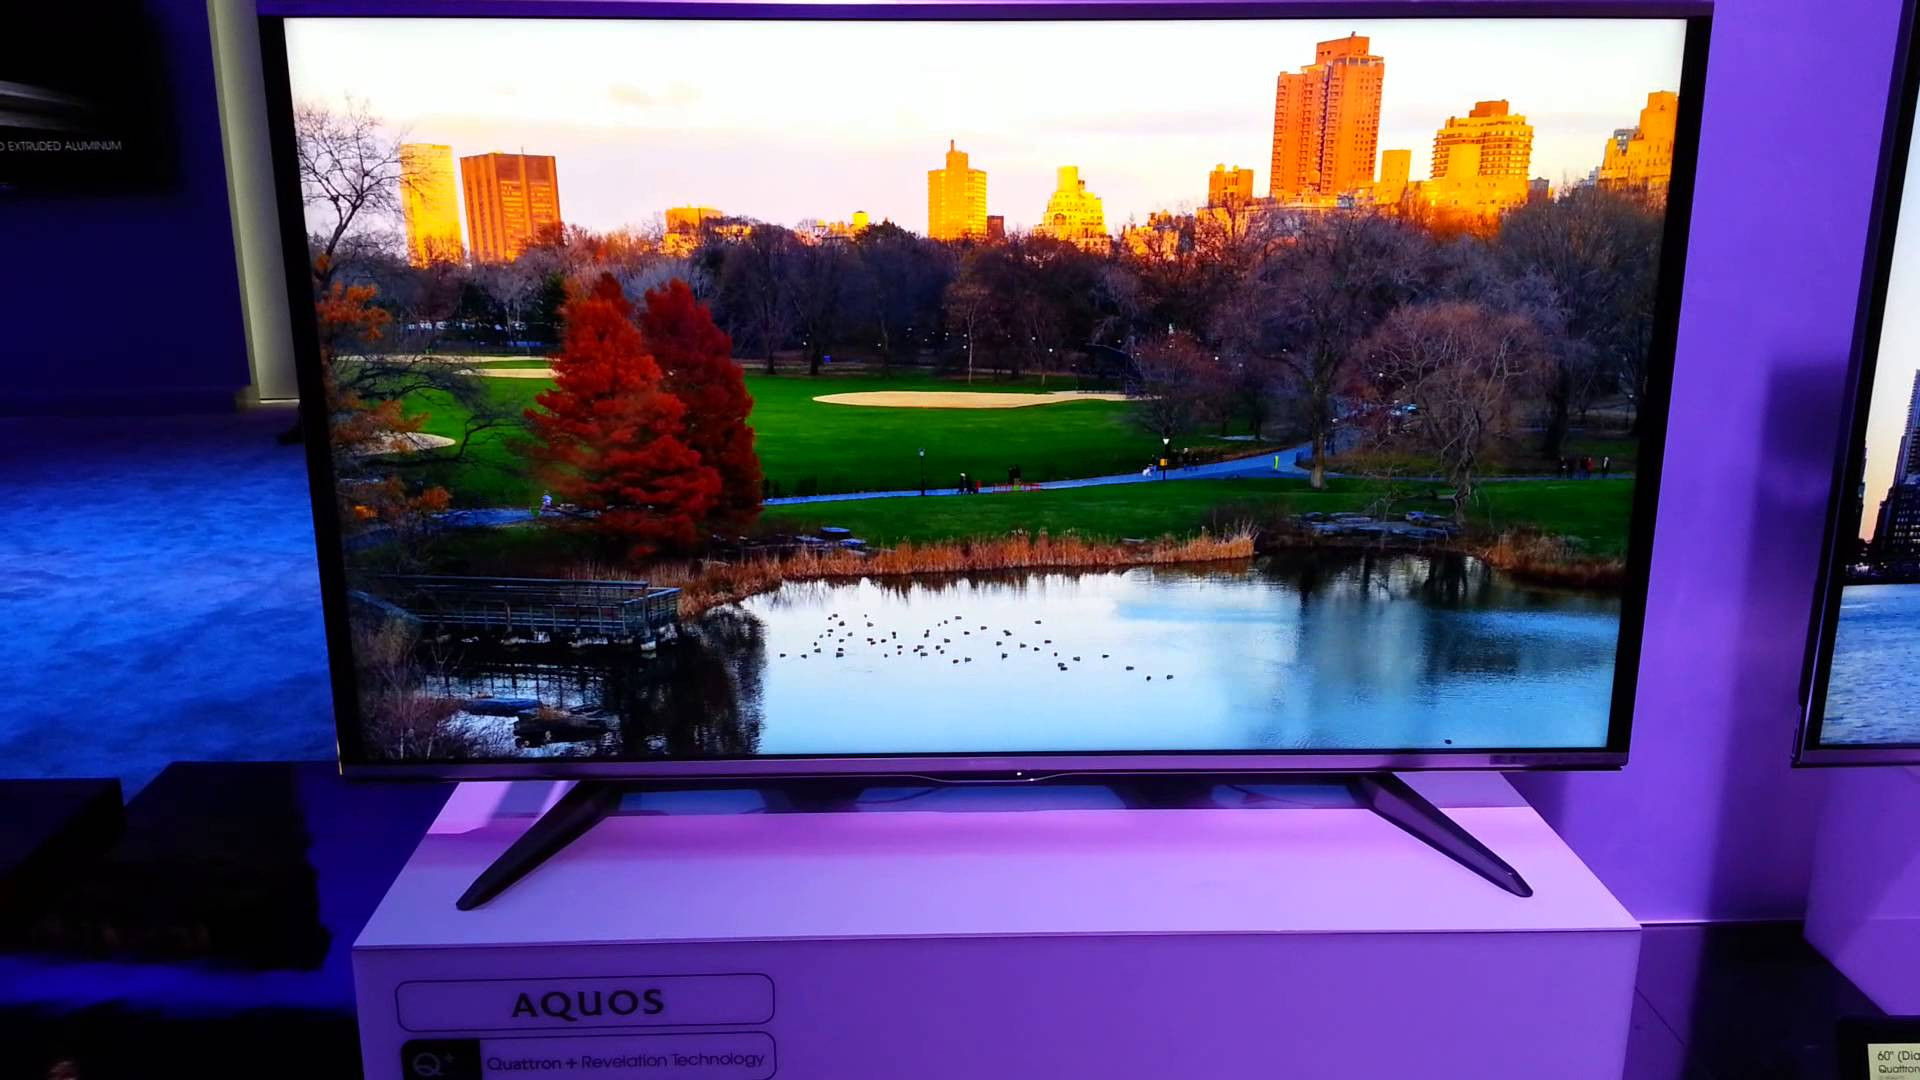 Tv 60 Pulgadas 4k Contemporáneo Ces Sharp Quattron 60 Inch Led 4k Patible Tv Of Tv 60 Pulgadas 4k Magnífico ソニー初の曲面4kテレビ Bravia S90 発表。サムスンやlgに続く Engad 日本版